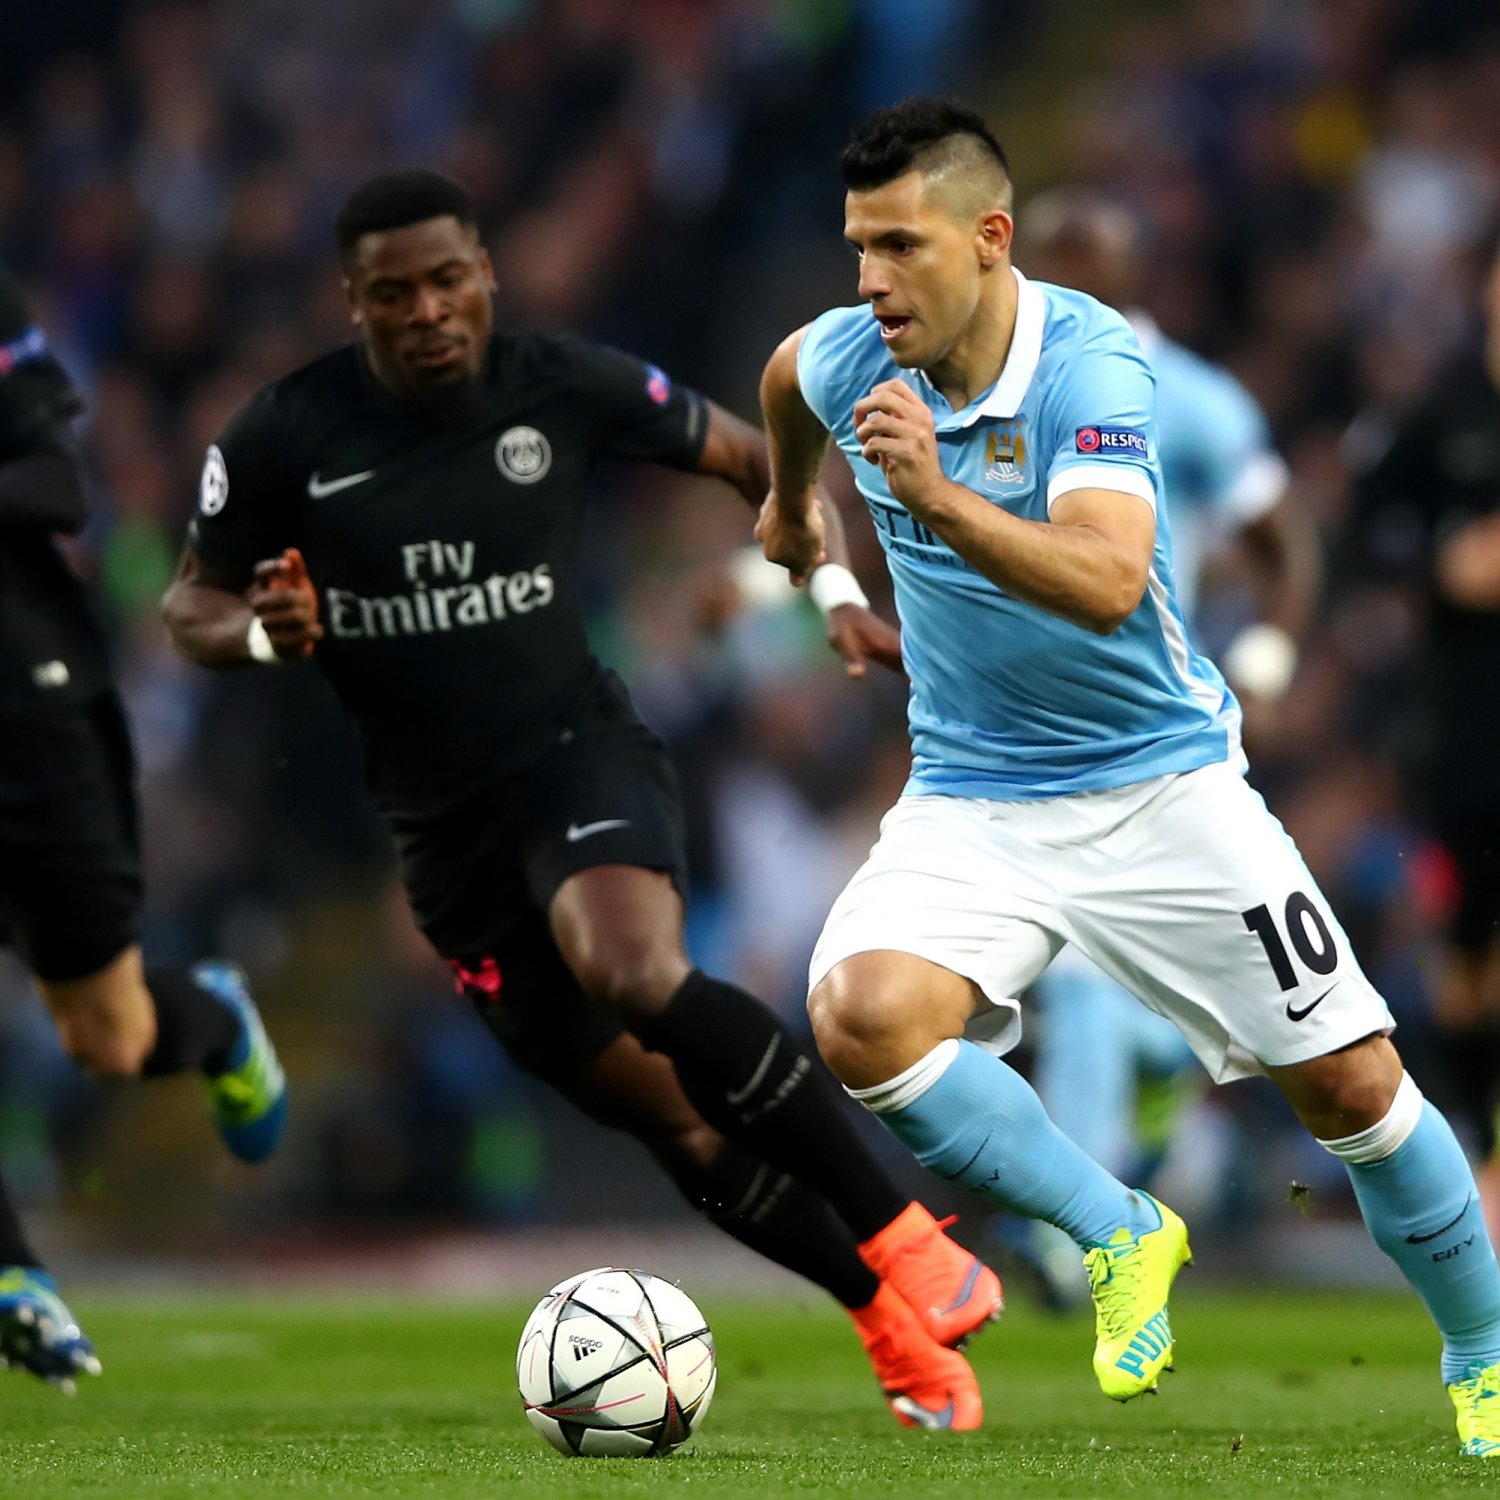 Psg Vs Manchester City Live Score Highlights From